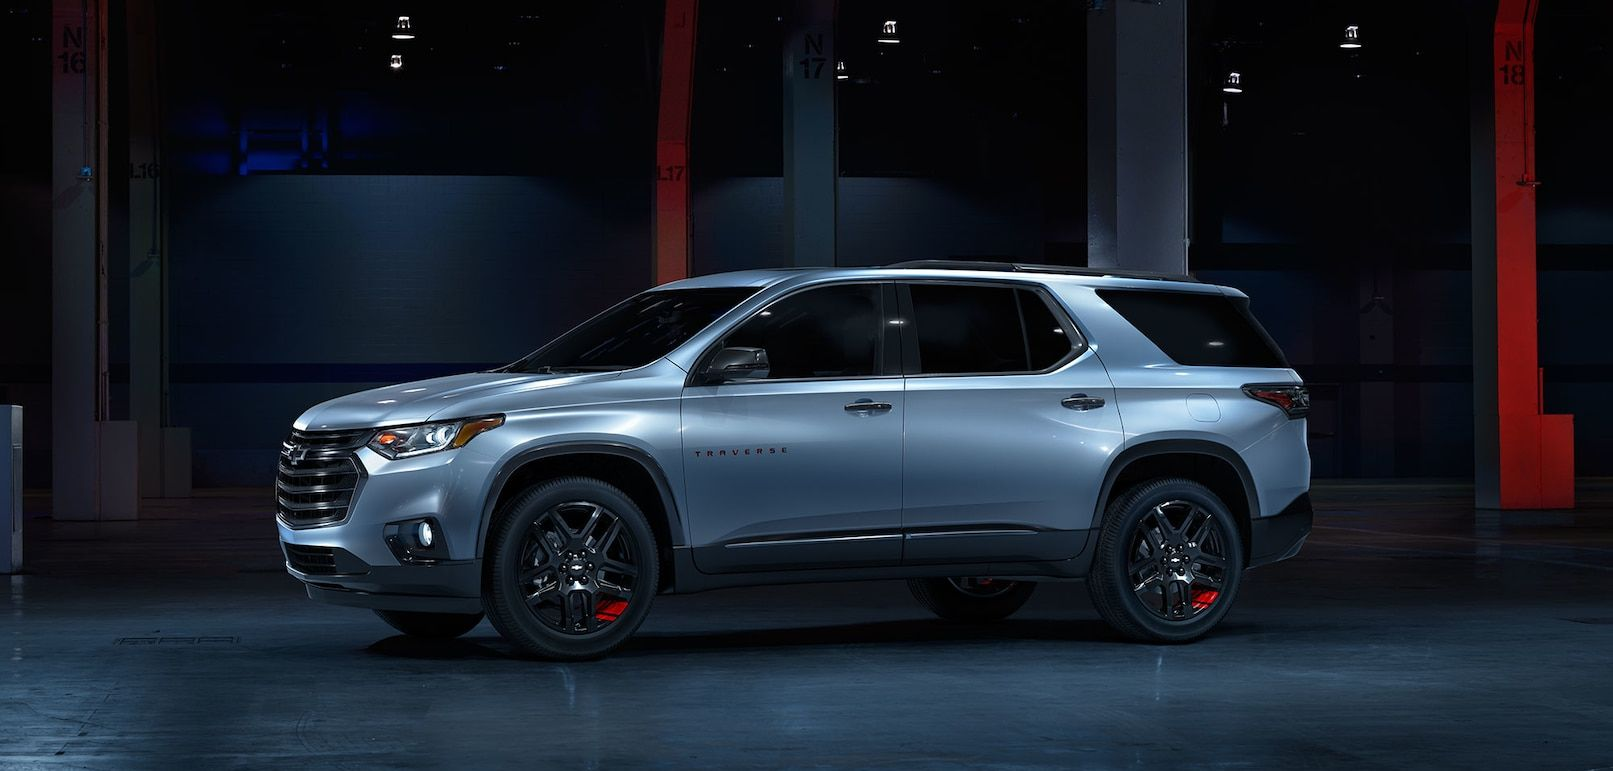 2018 Traverse Redline >> 2018 Chevrolet Traverse Redline For Sale In Youngstown Oh